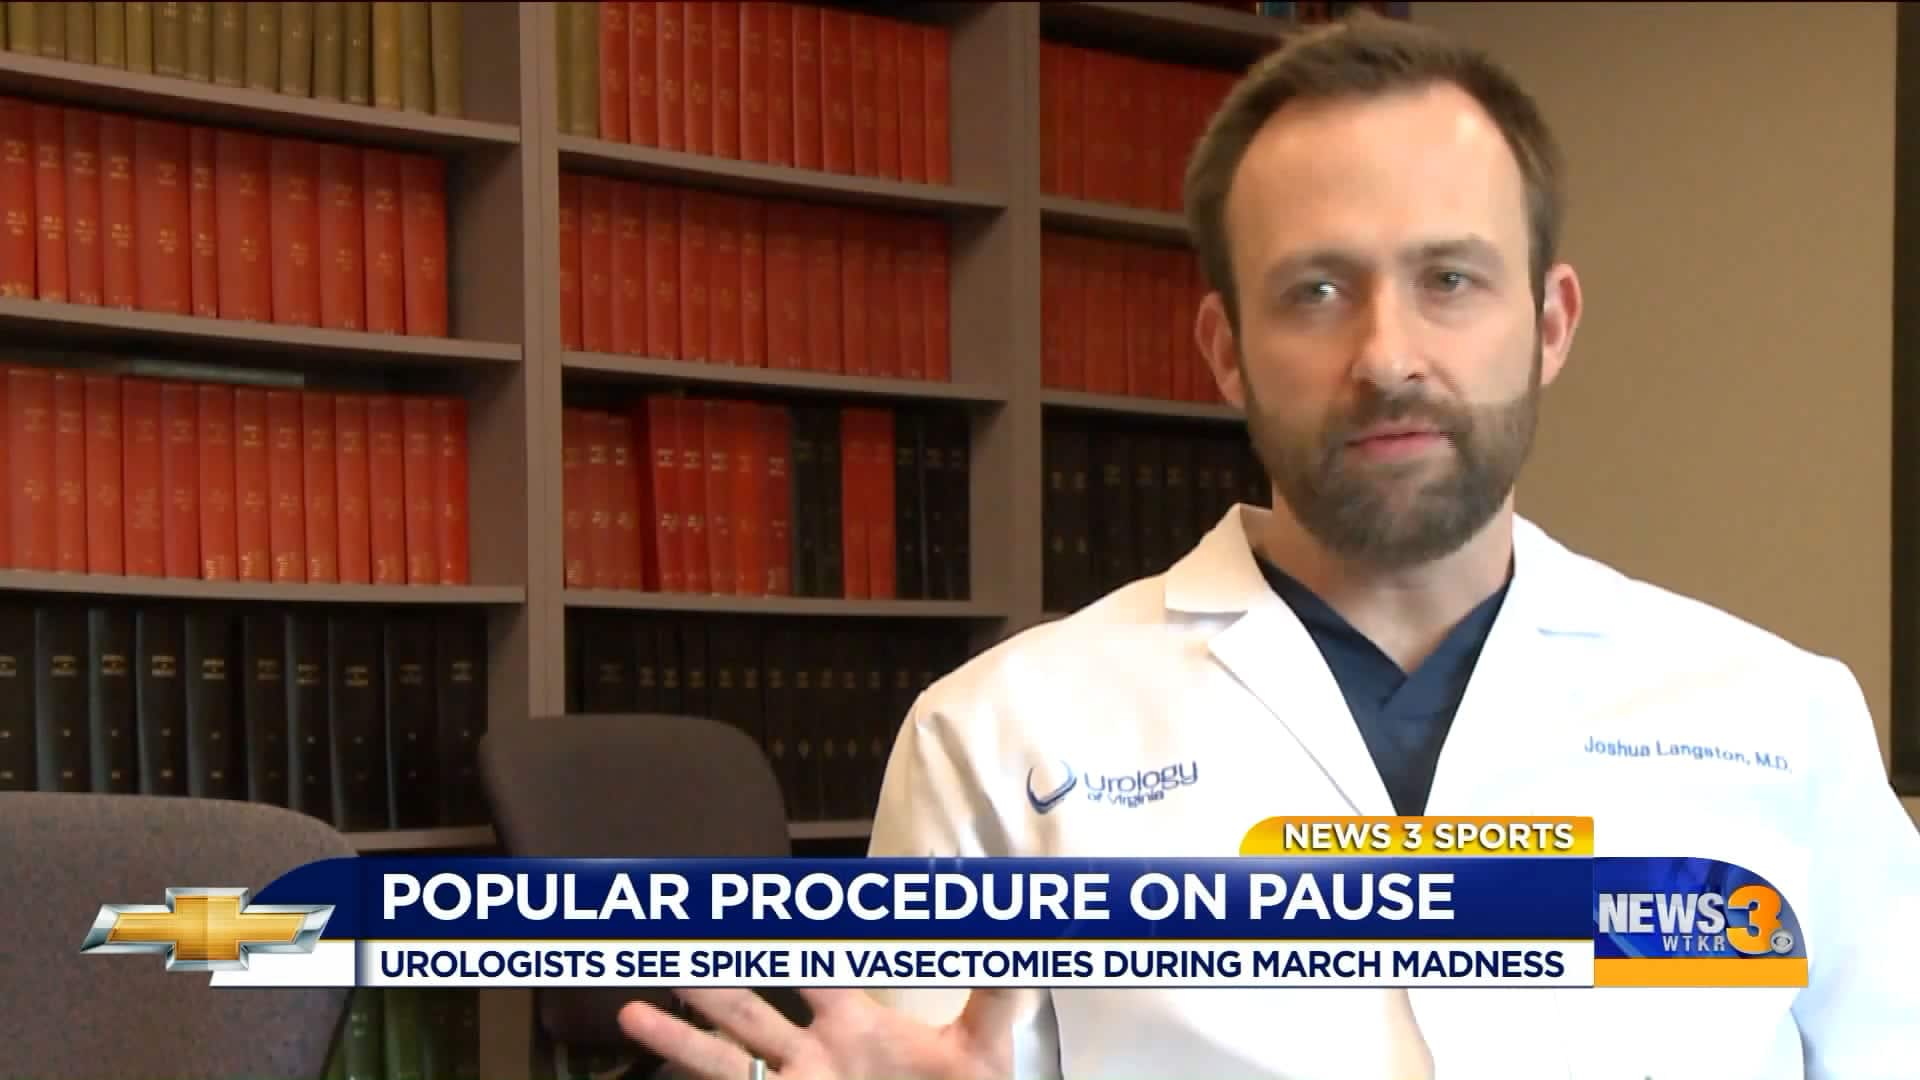 Dr. Langston on March Madness,vasectomies and the COVID-19 Baby Boom.